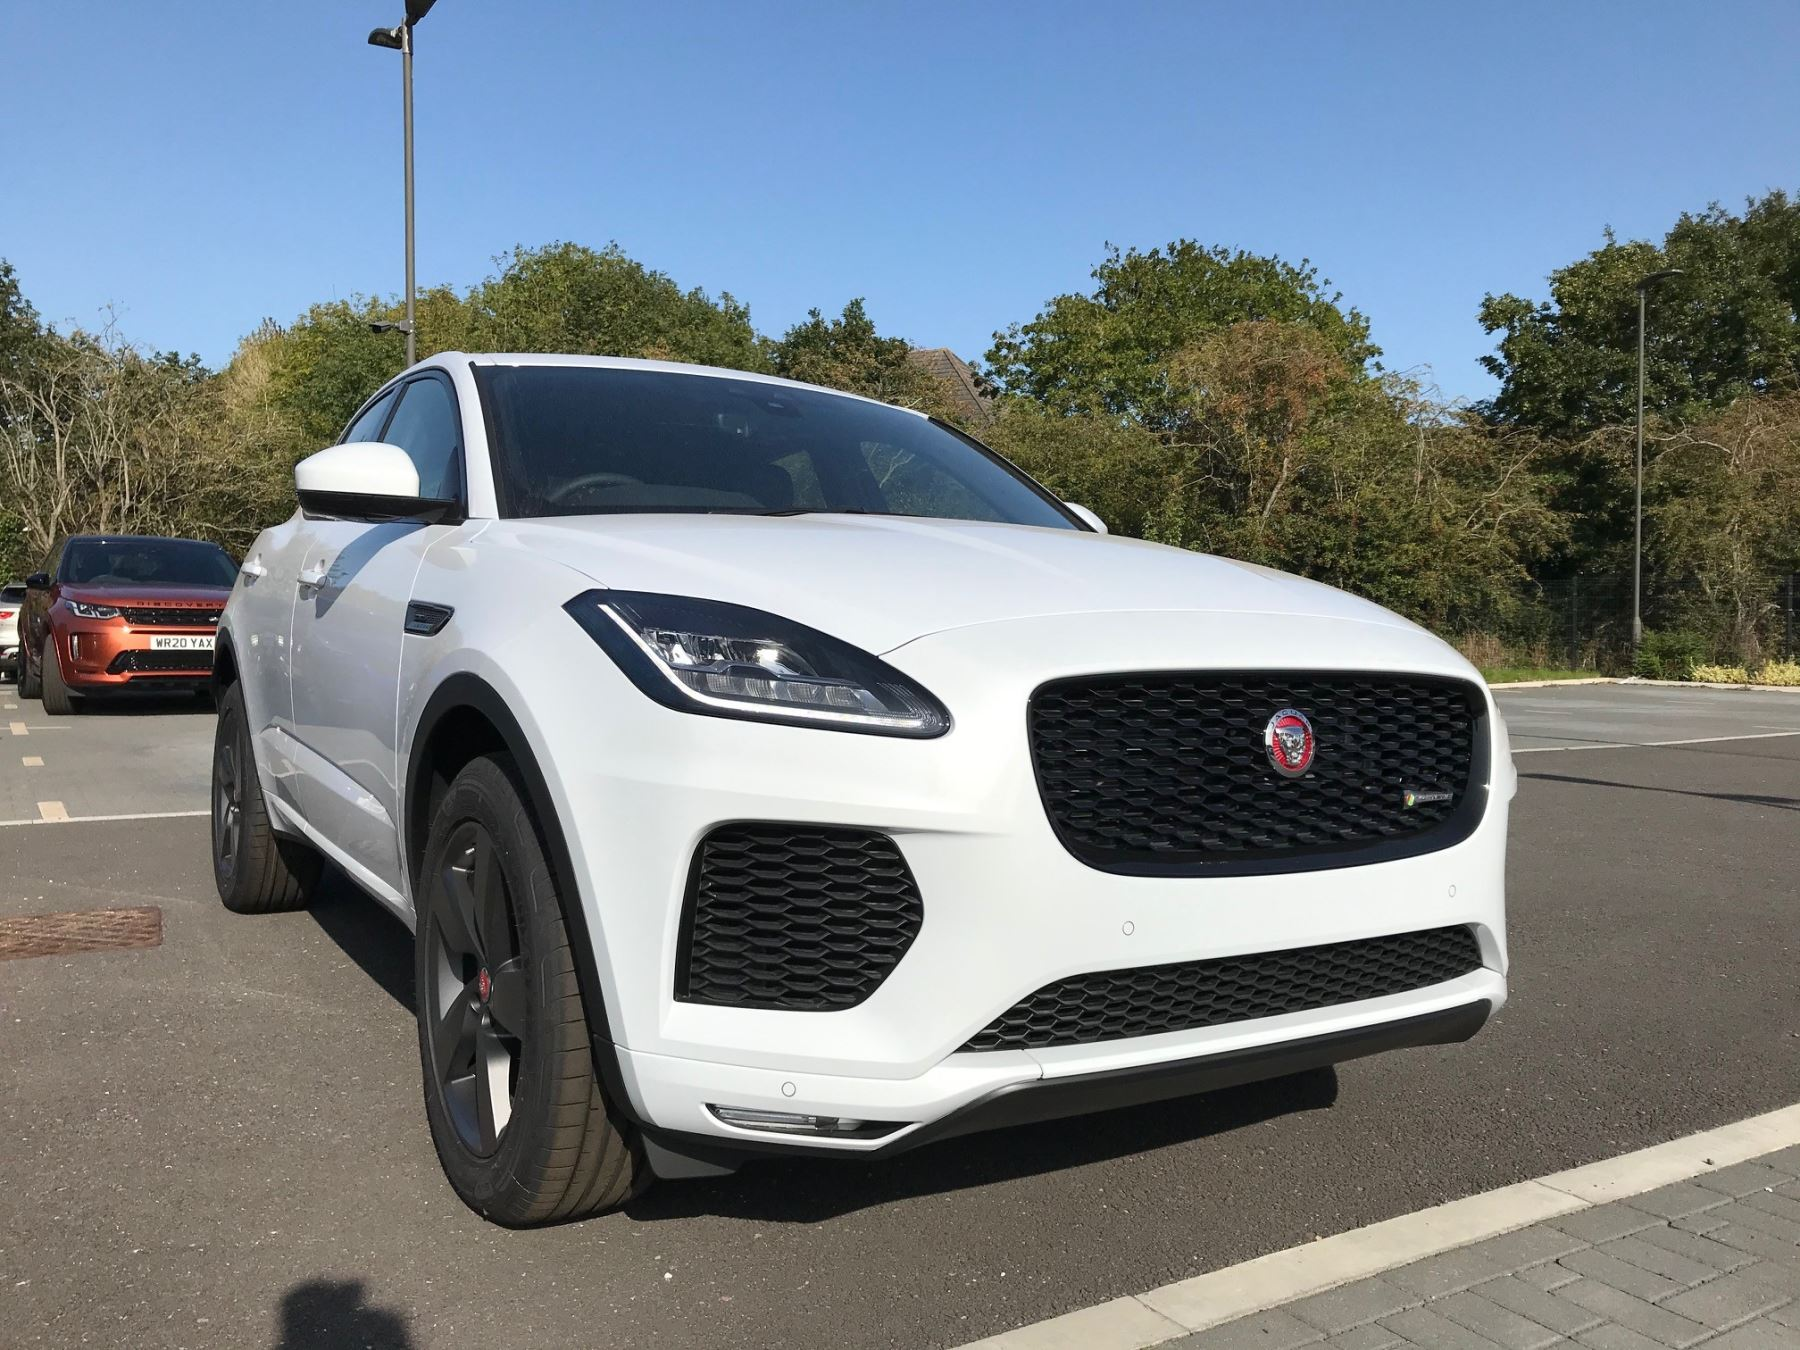 Jaguar E-PACE 2.0d [180] Chequered Flag Edition SPECIAL EDITIONS Diesel Automatic 5 door Estate